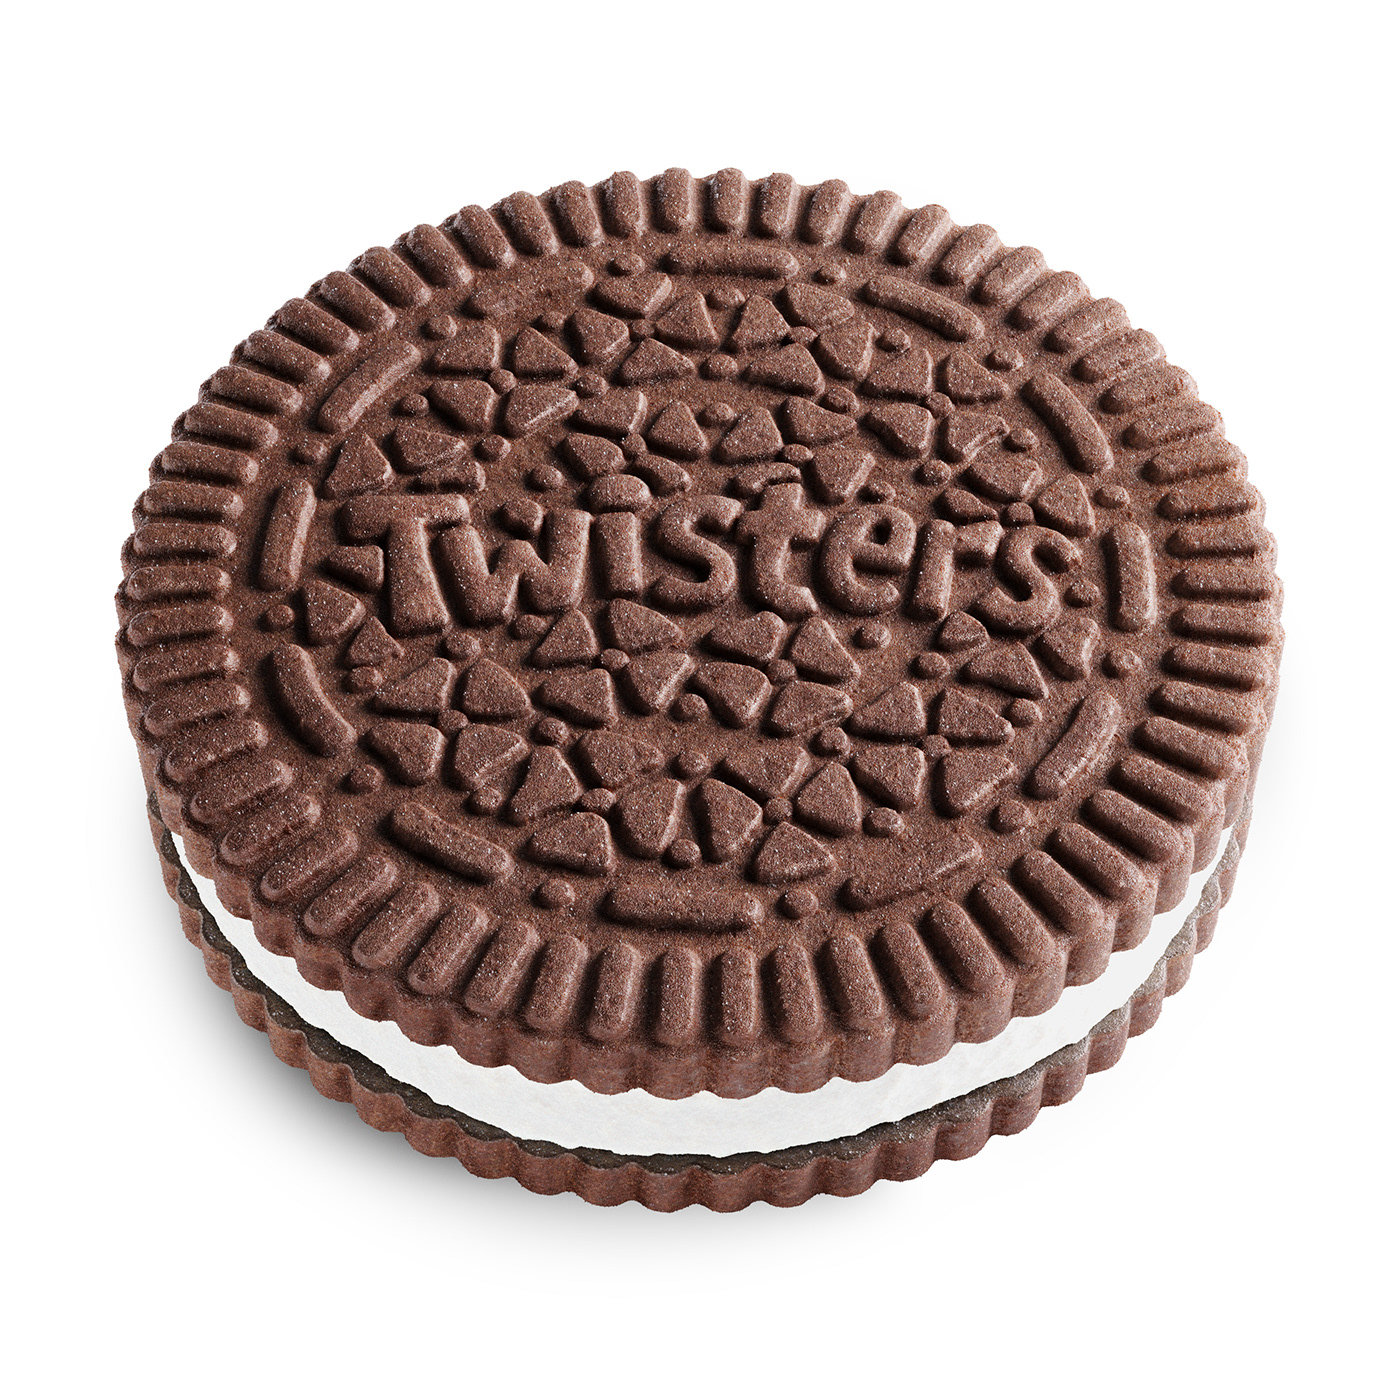 3D biscuit blender Candy CGI chocolate cookie oreo realistic Twister